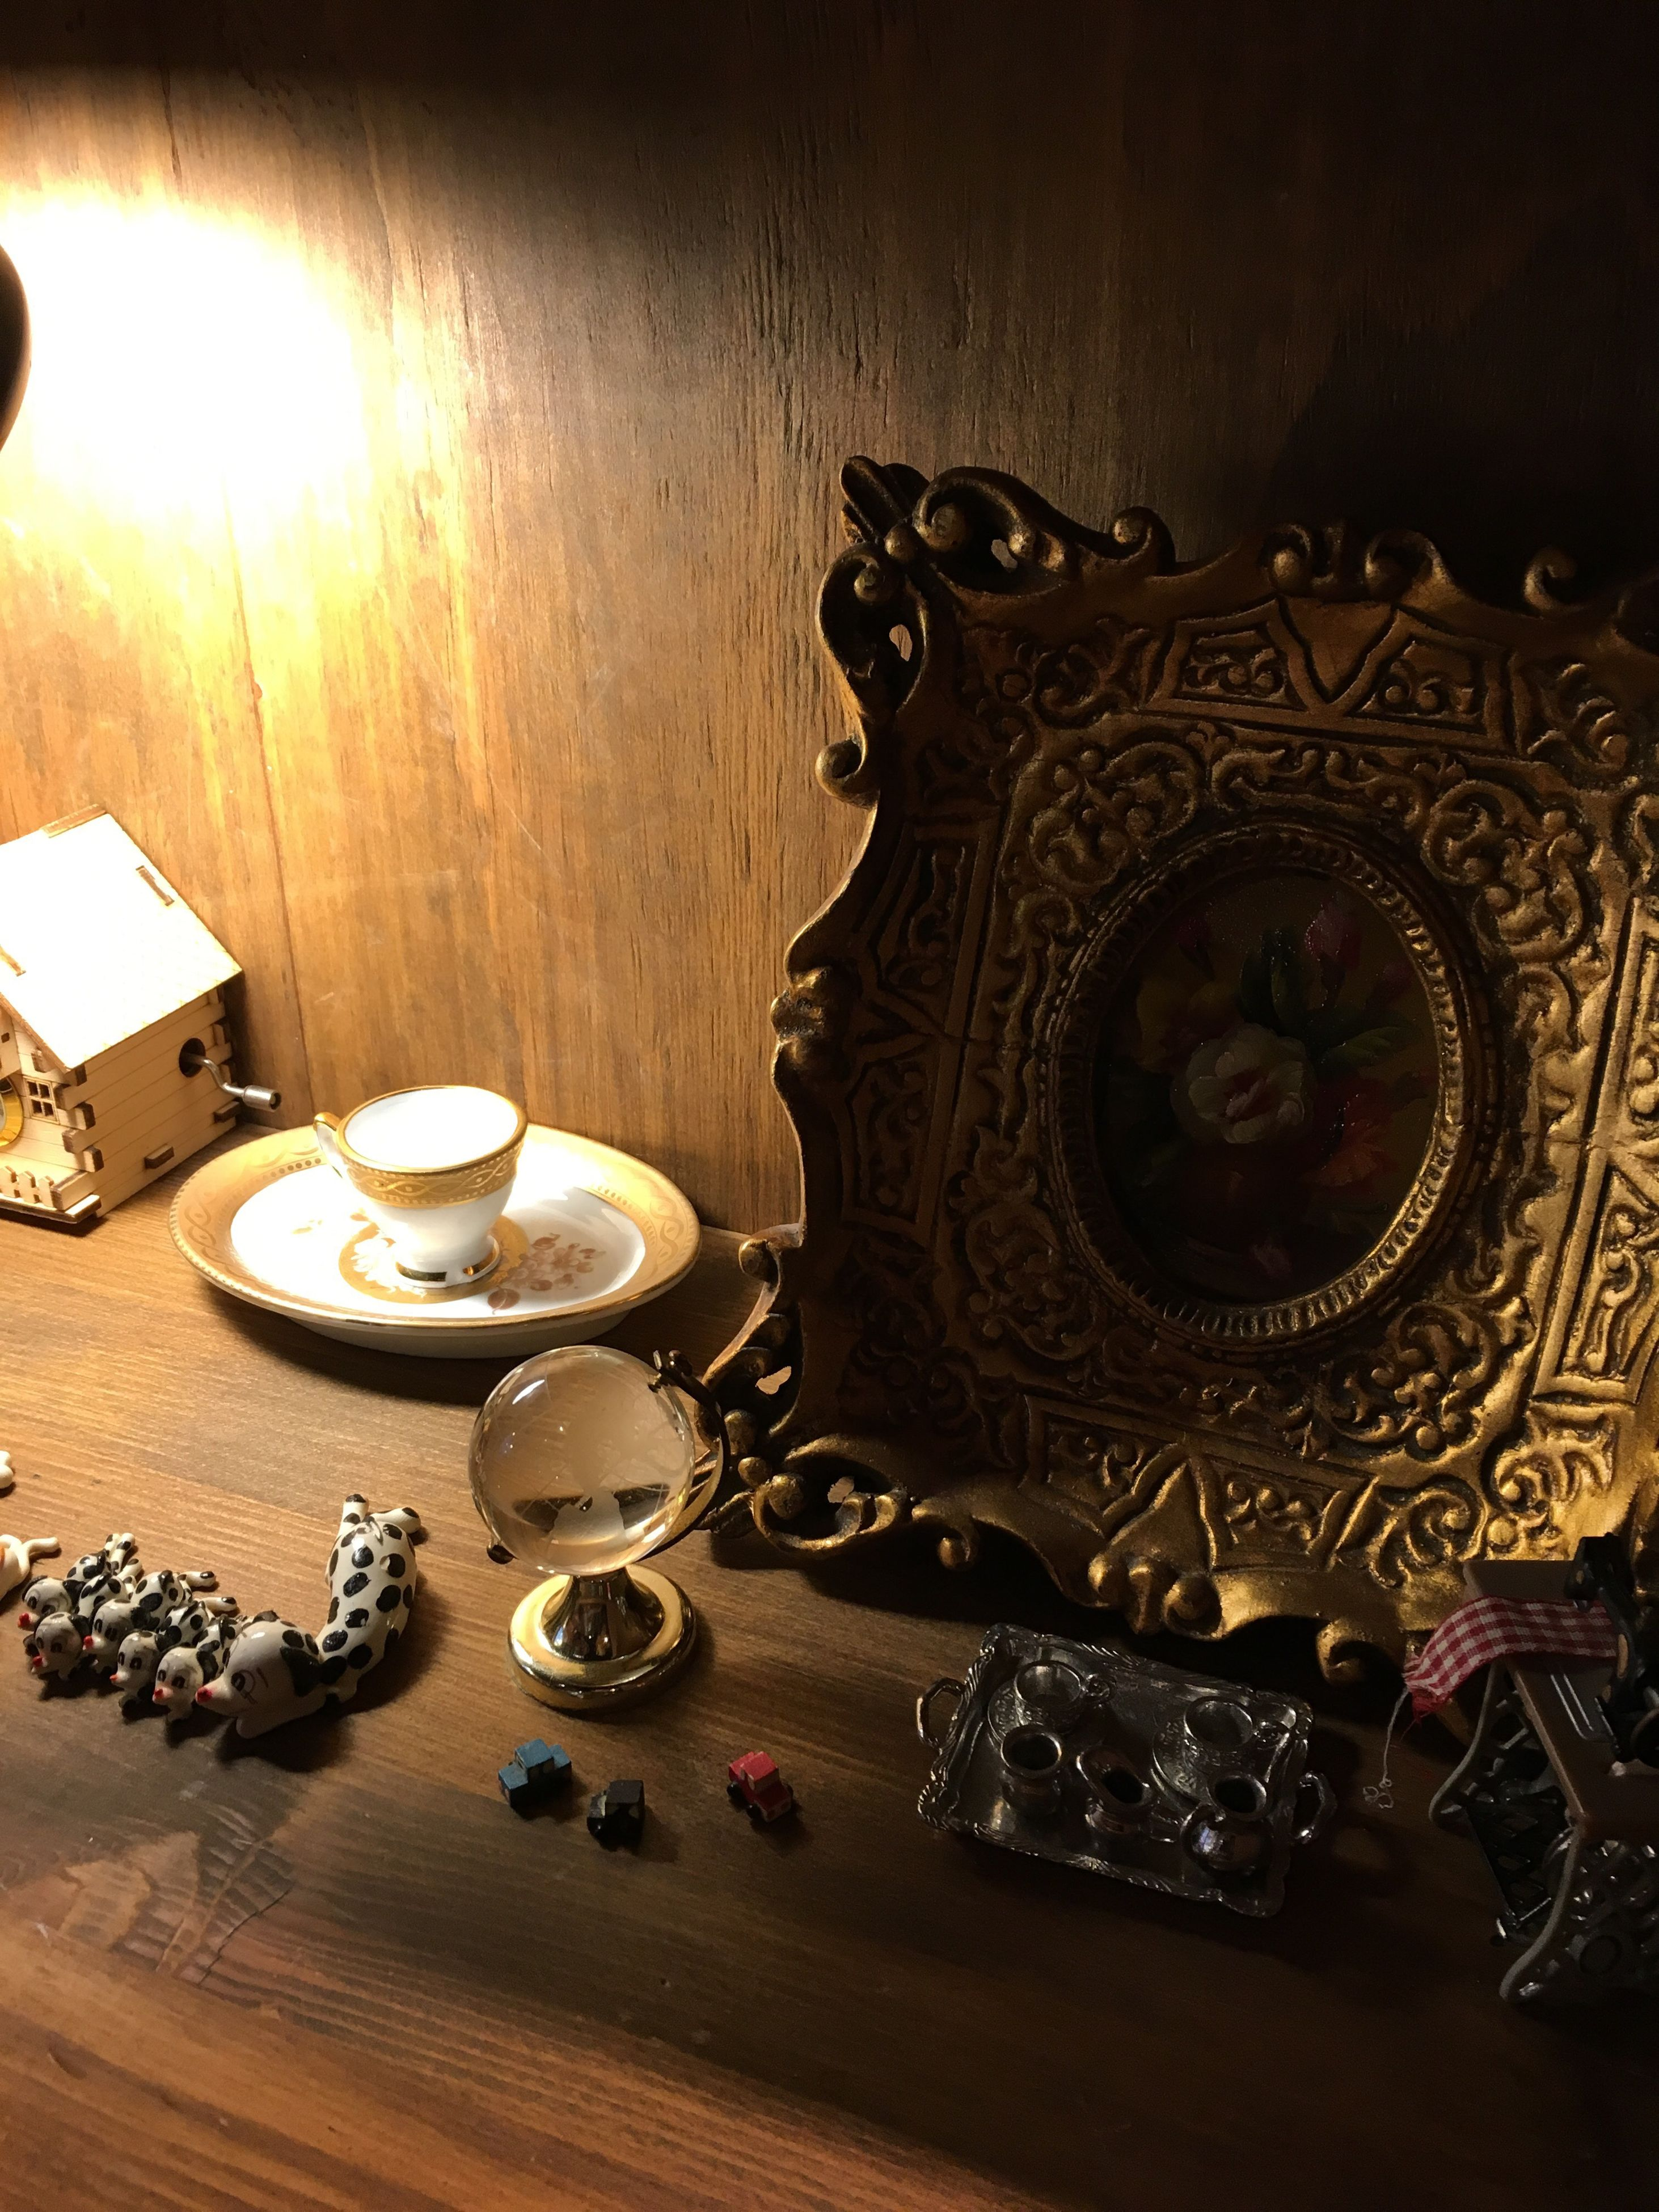 indoors, table, illuminated, still life, high angle view, old-fashioned, home interior, lighting equipment, antique, retro styled, no people, technology, arts culture and entertainment, close-up, large group of objects, luxury, wall - building feature, music, arrangement, in a row